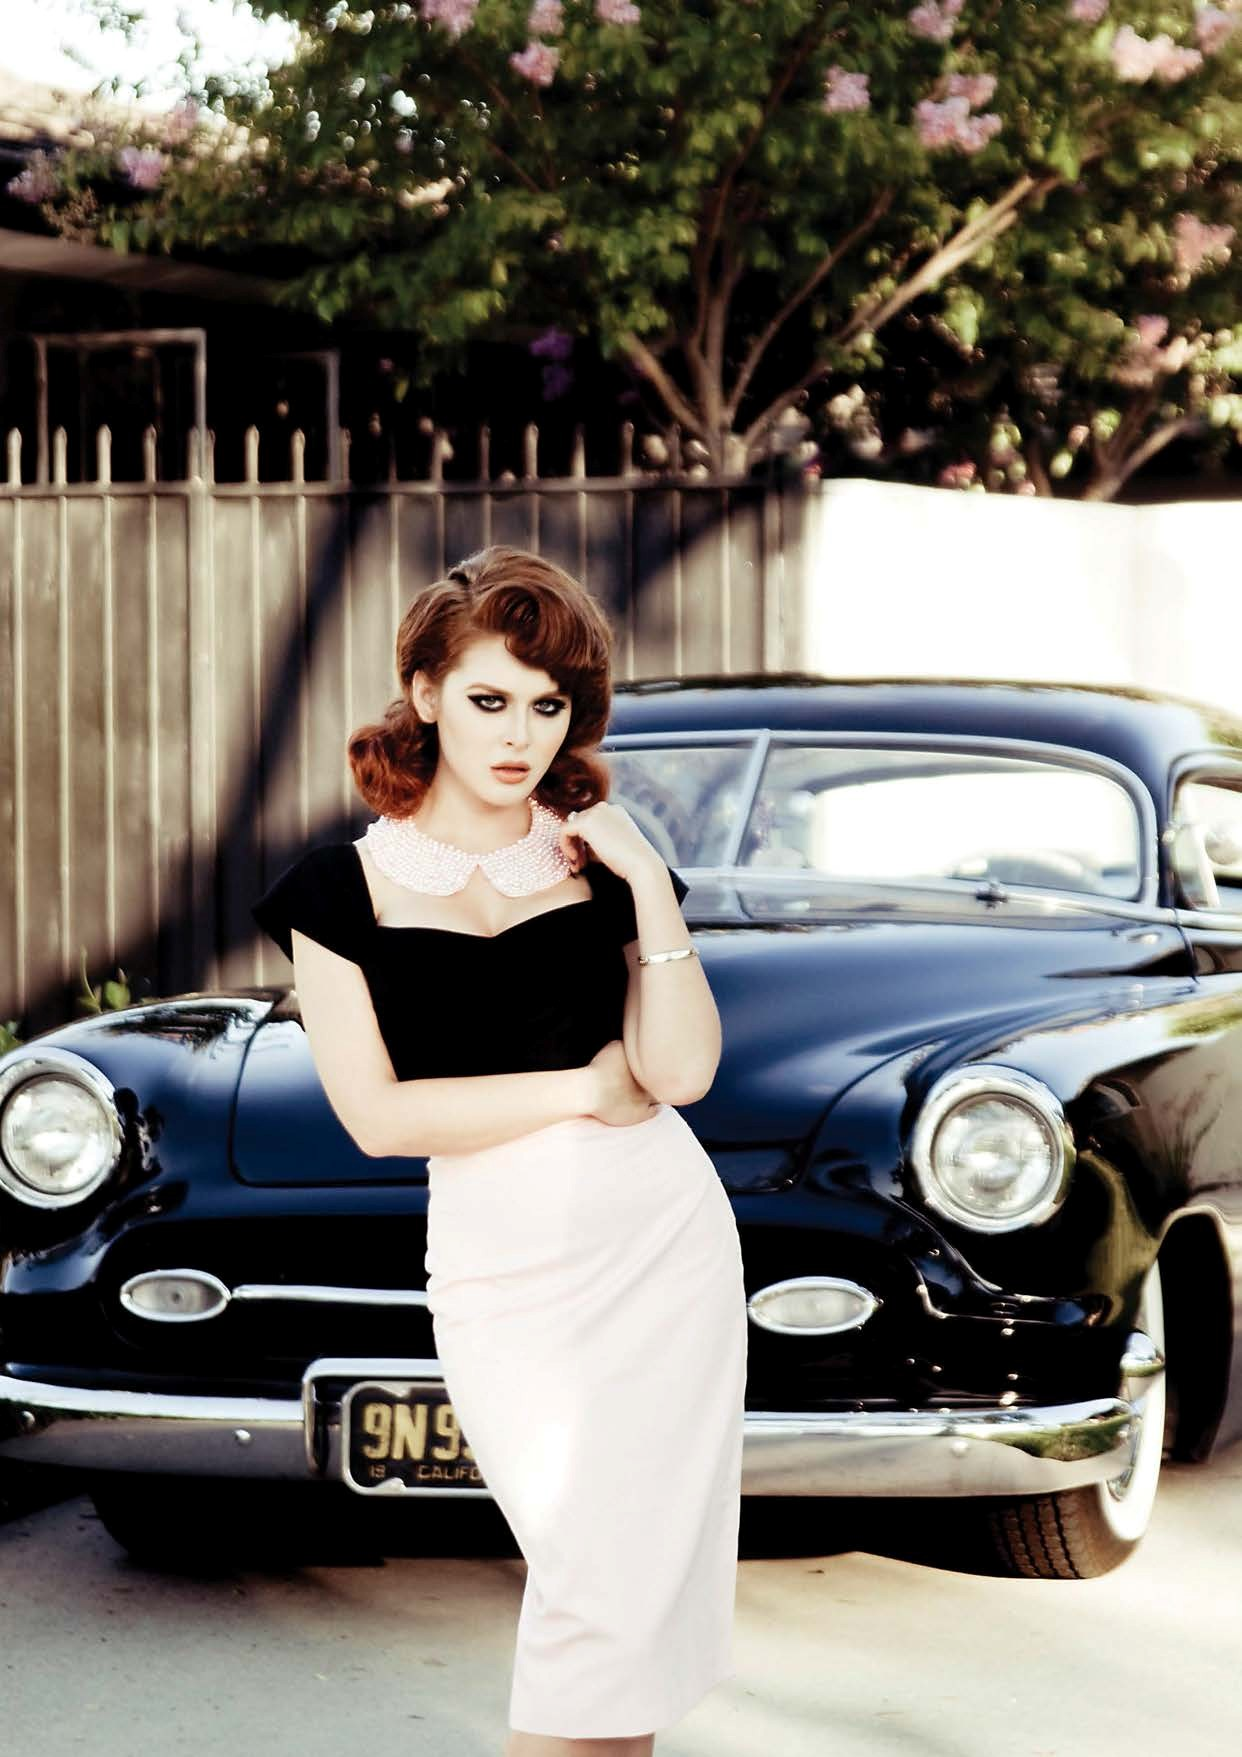 Renee Olstead Is Gangsta Hot Next To A Chevy Deluxe Styleline Photyo Gallery Autoevolution